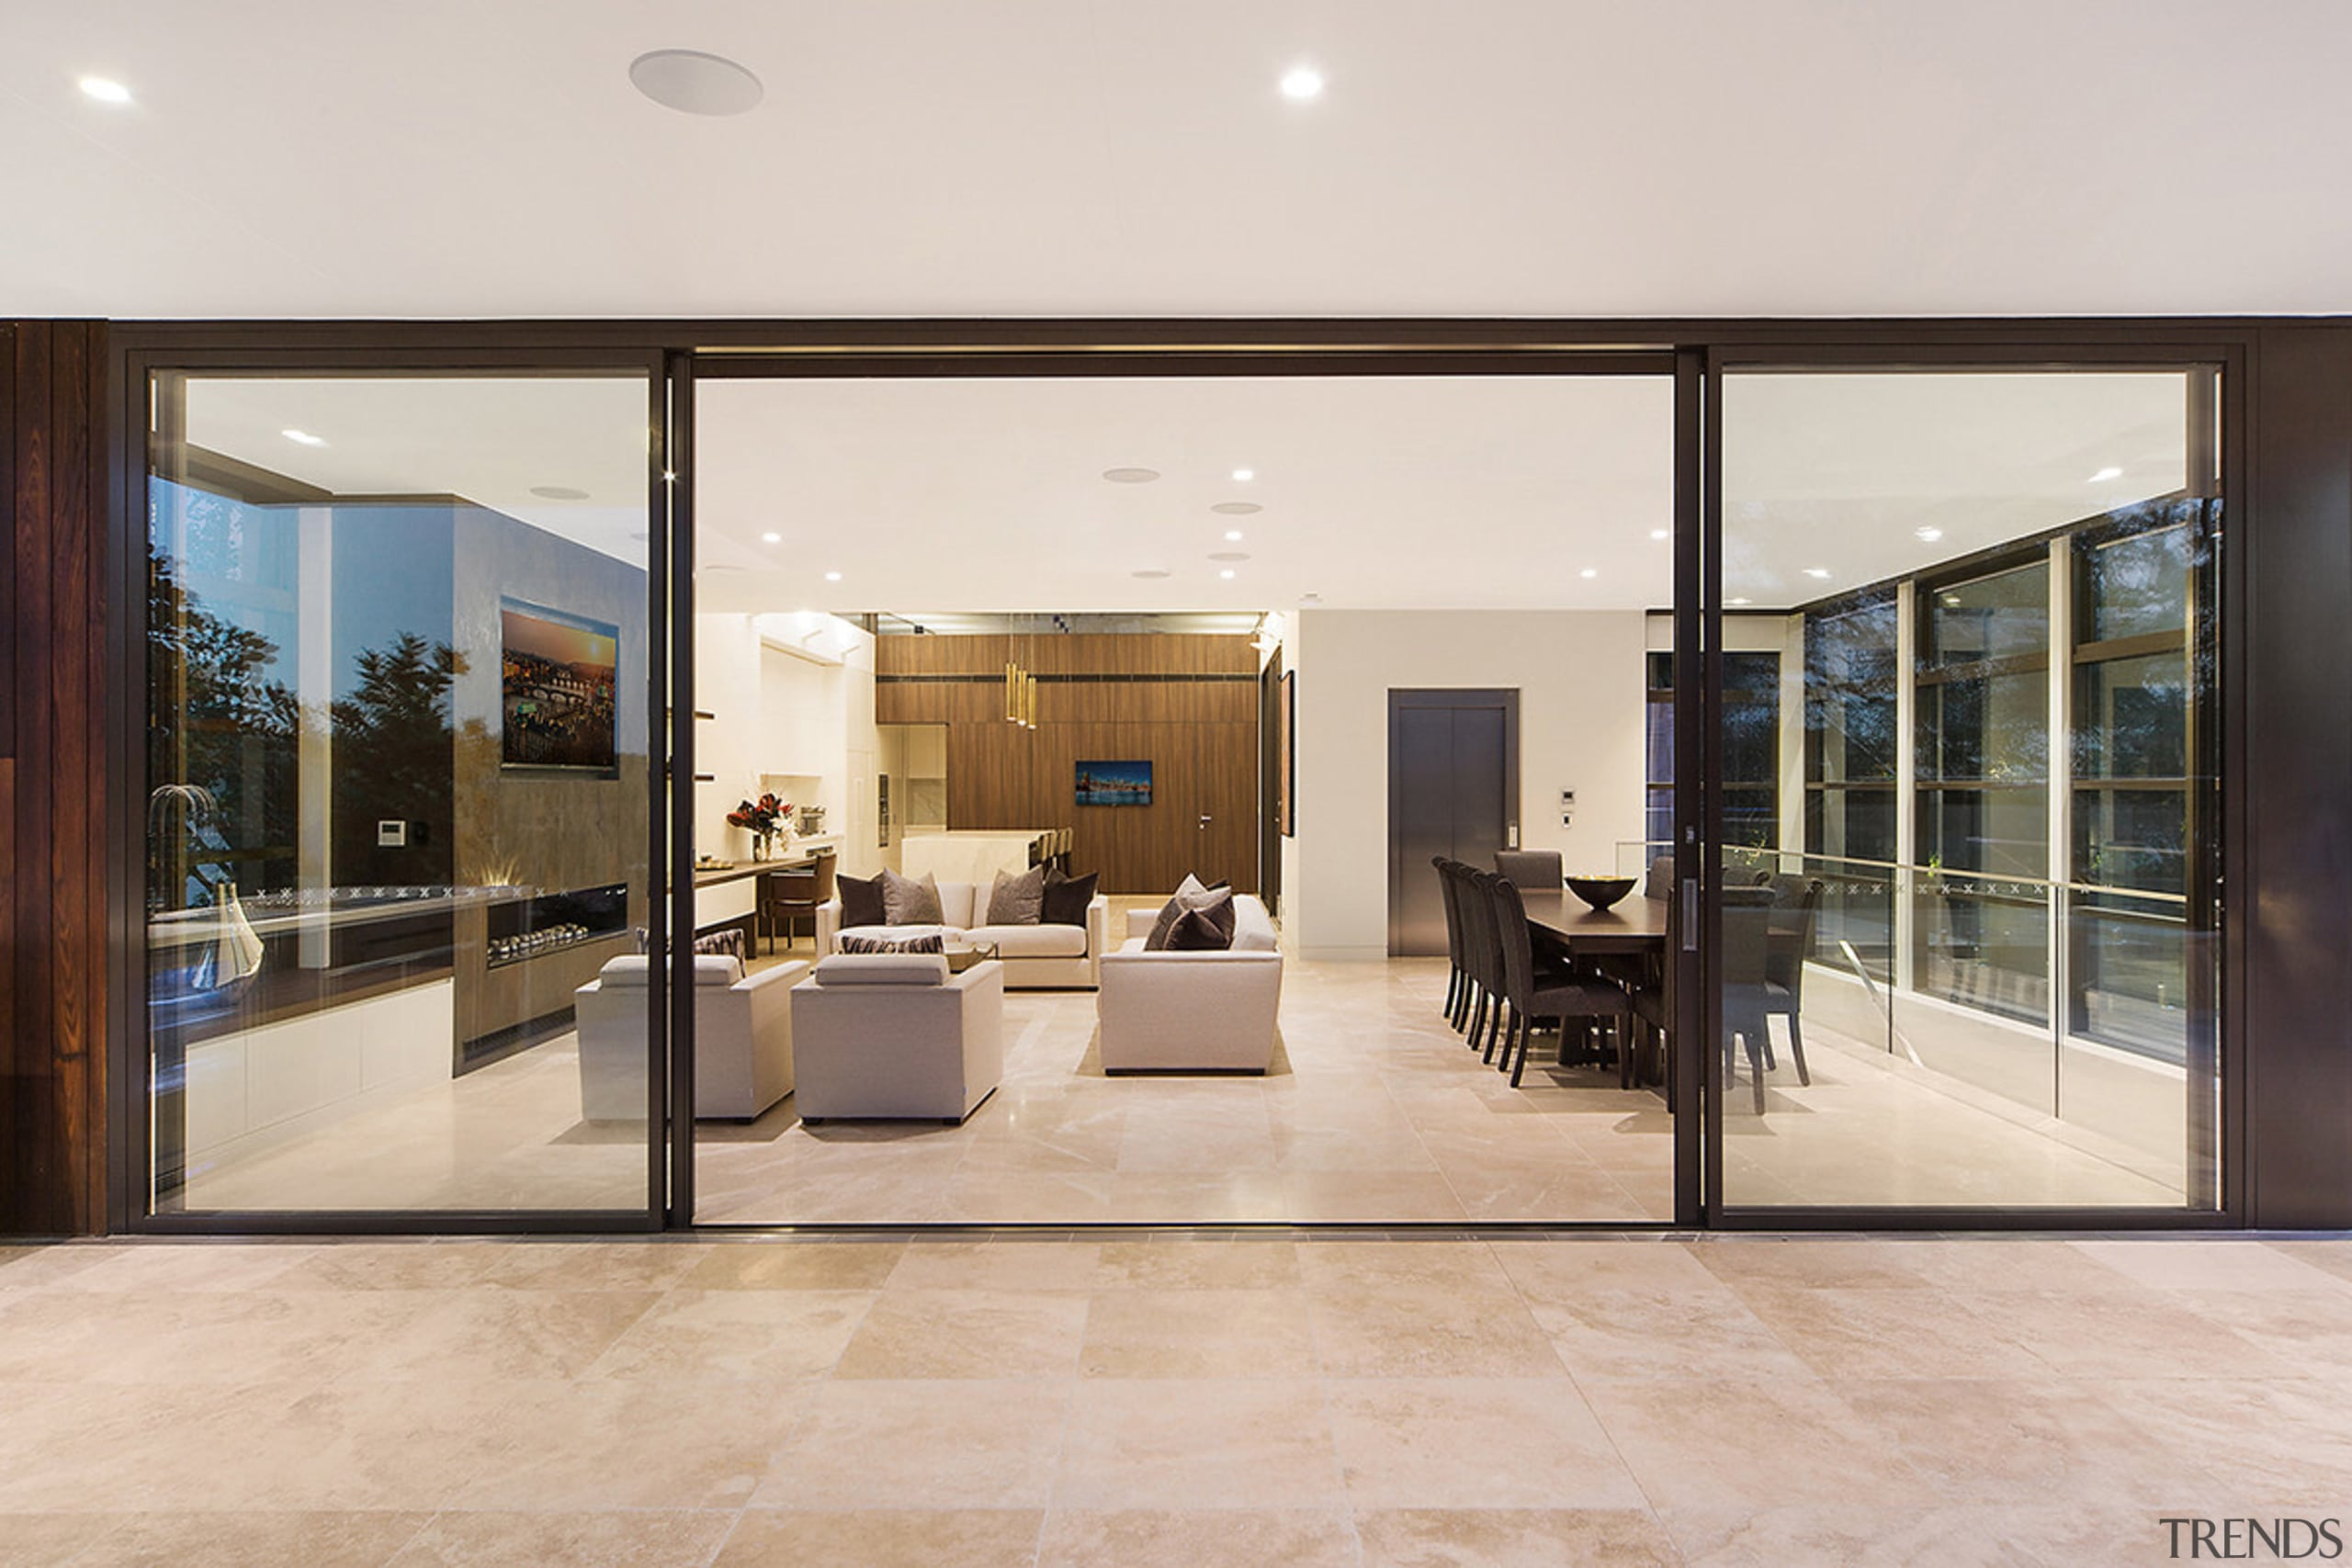 On this top floor of a three-level Sydney door, floor, flooring, house, interior design, lobby, real estate, window, gray